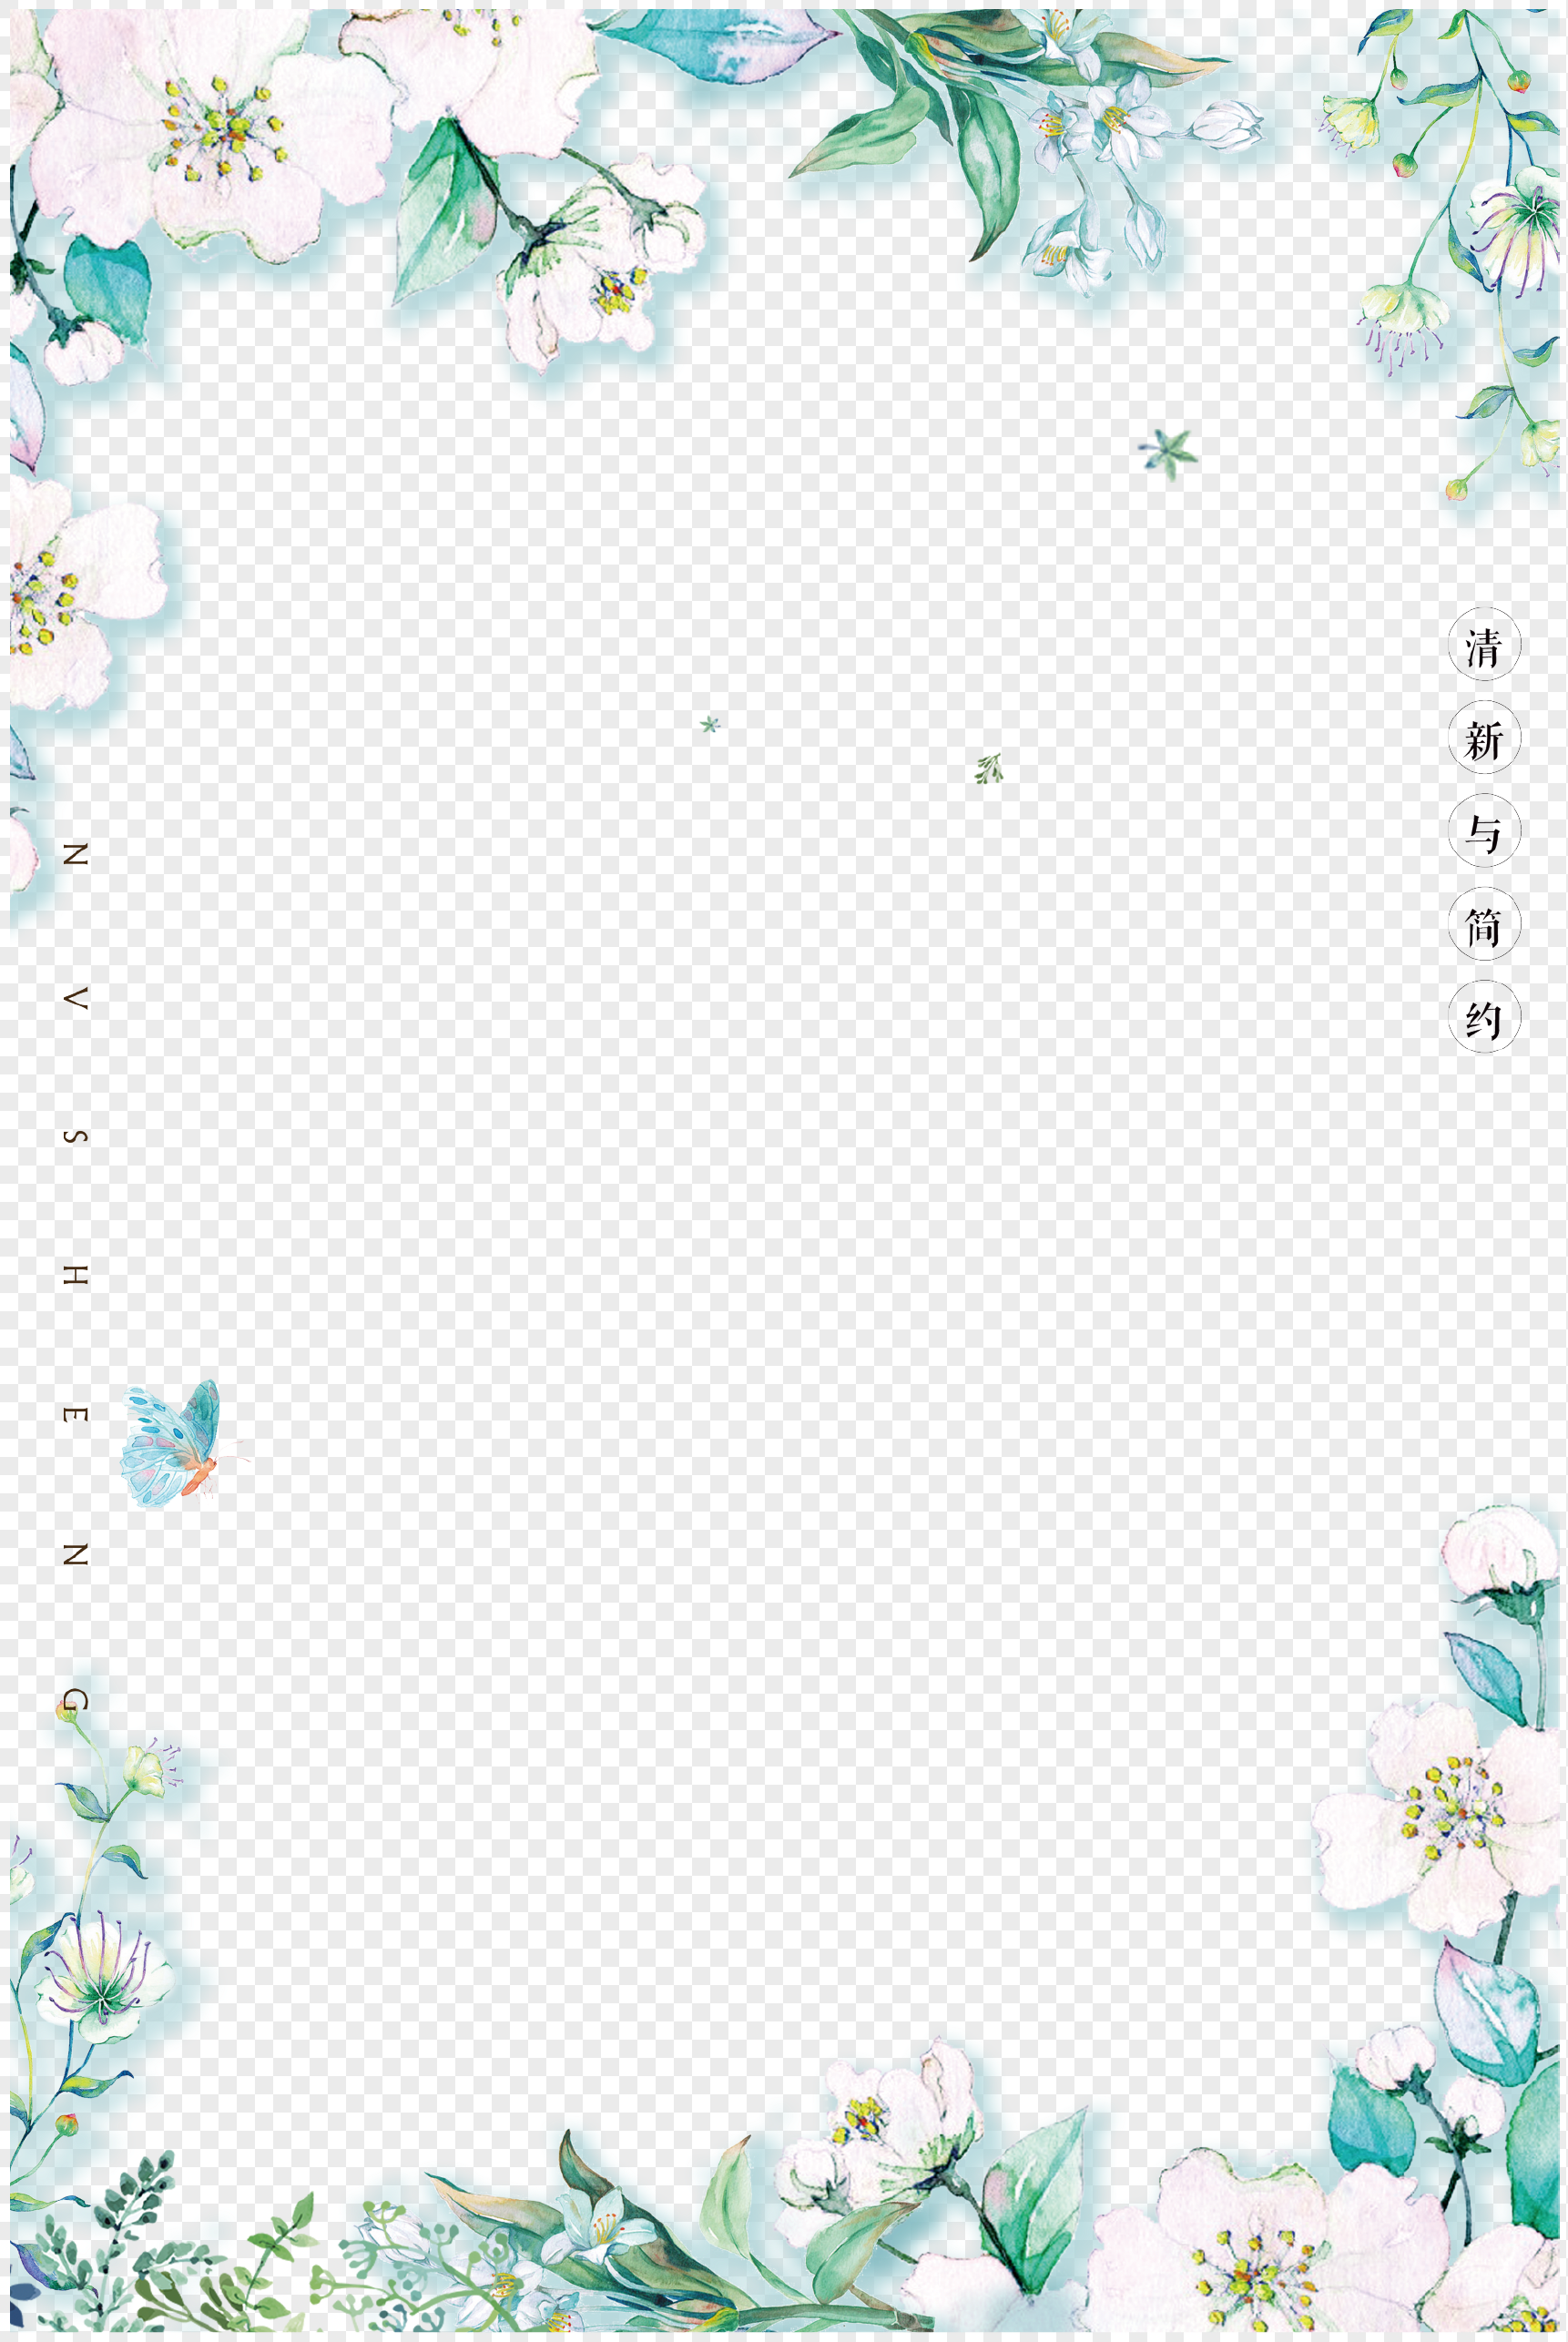 Blue Fresh Aesthetic Flower Decorative Background Png Image Picture